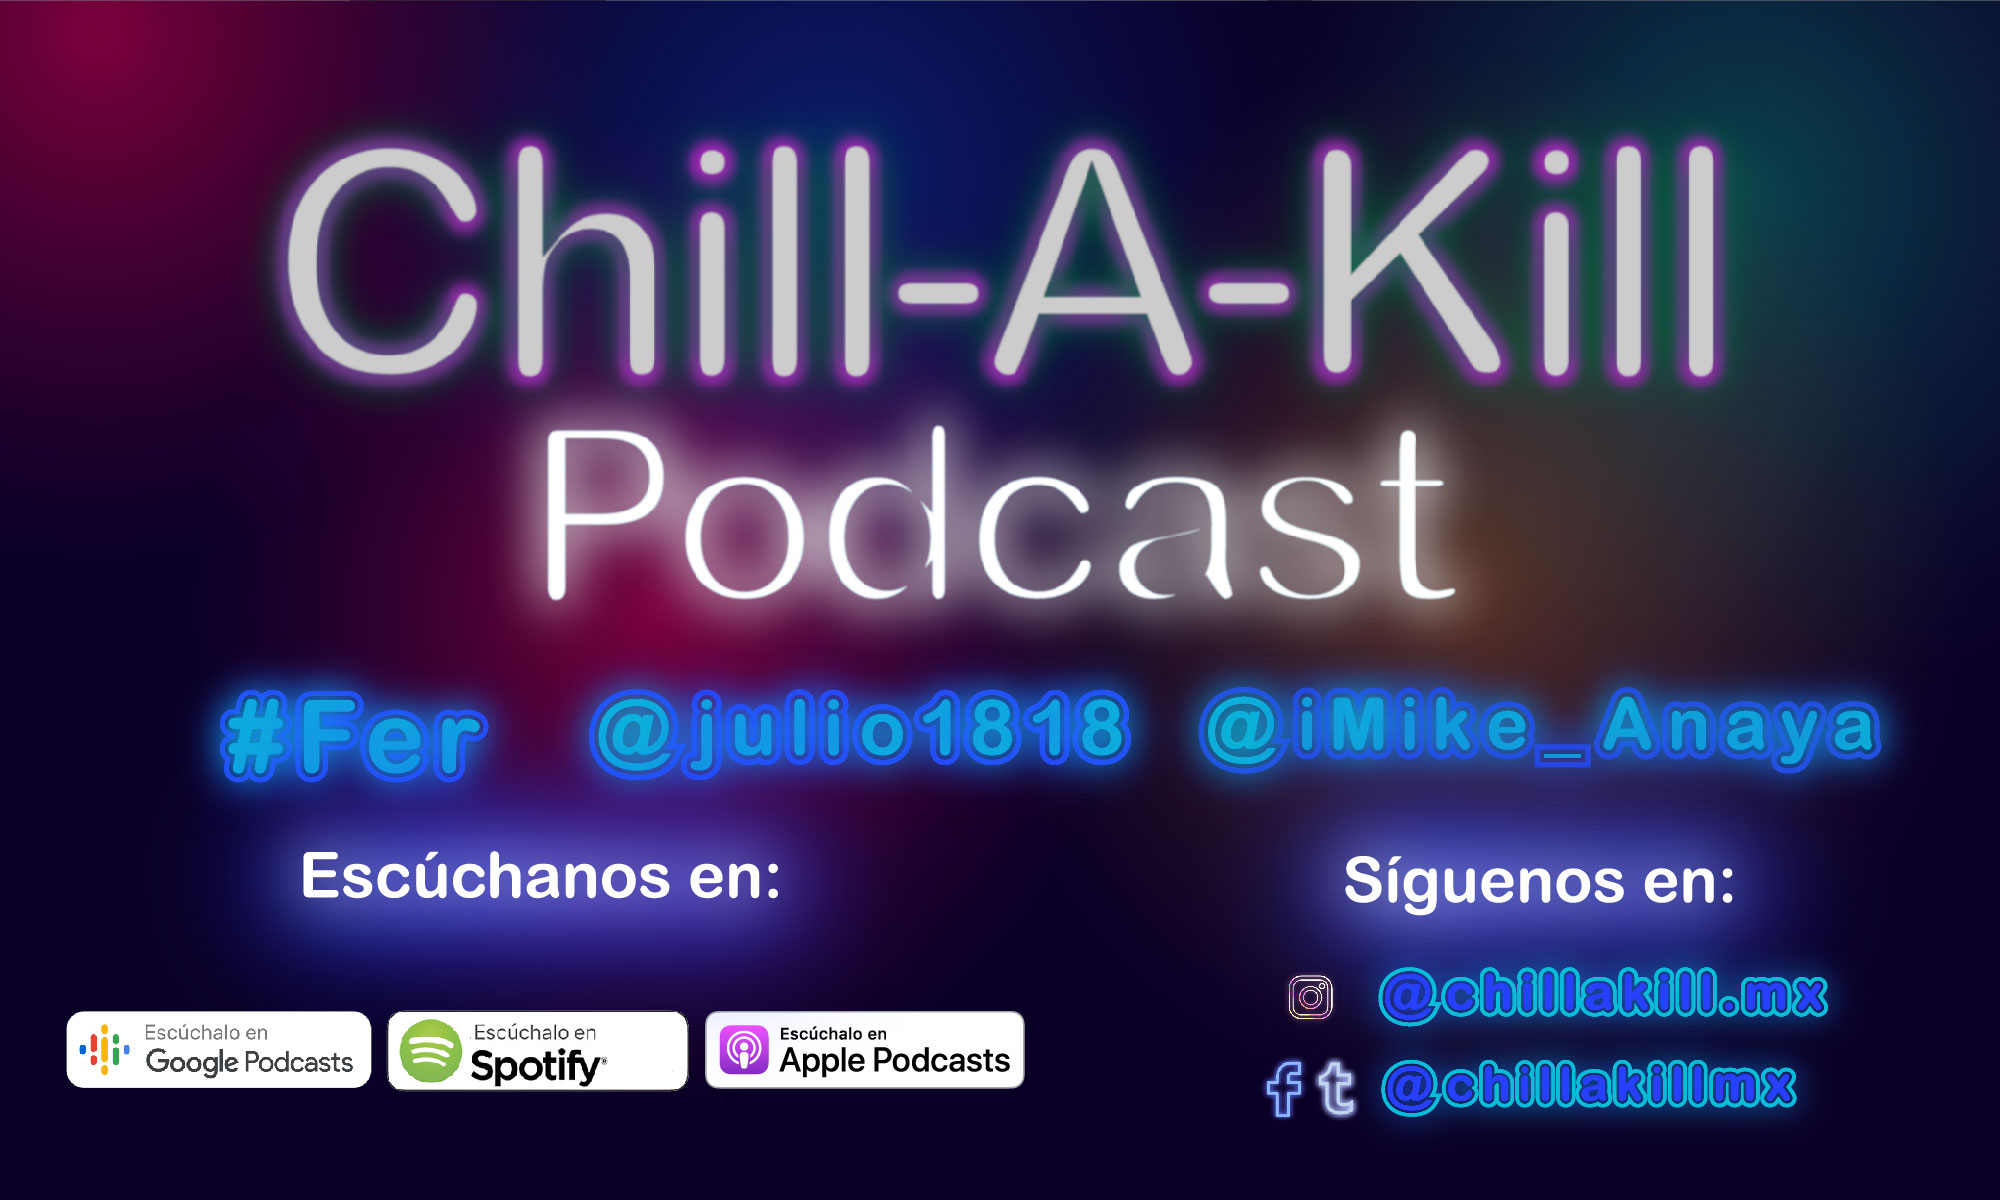 Chill-A-Kill Podcast